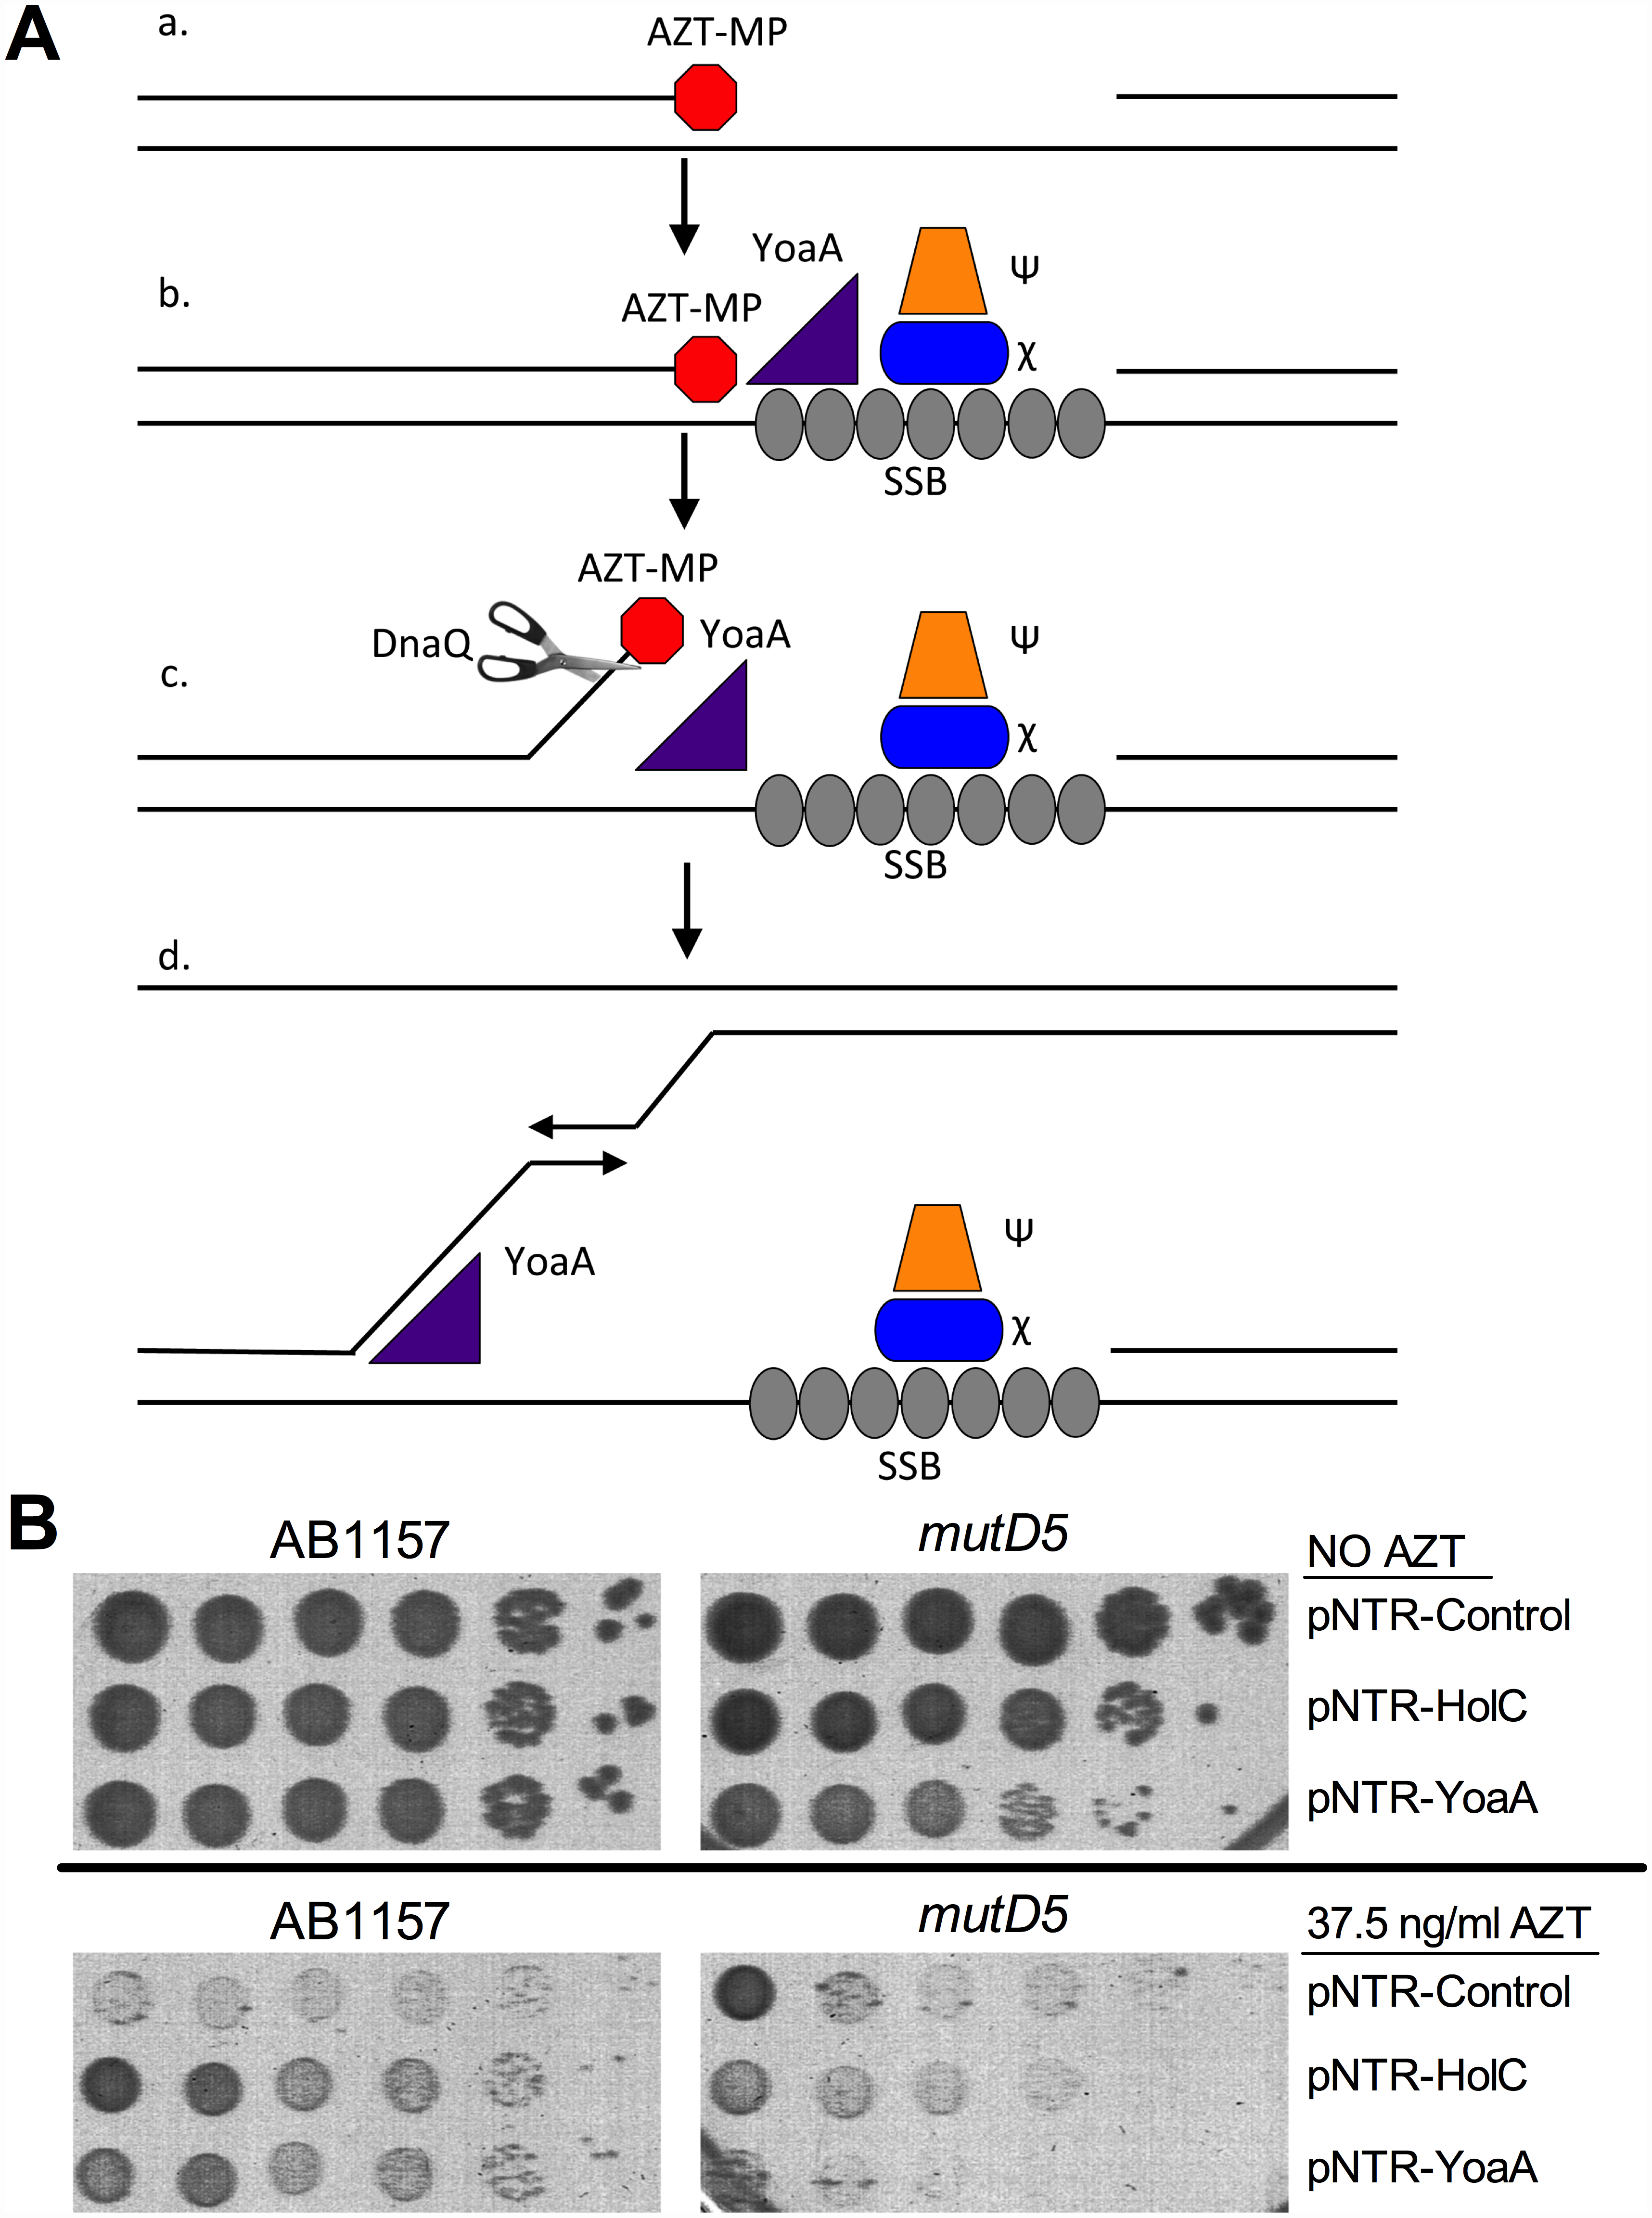 Model for the role of YoaA, x (HolC) and ε (DnaQ) in AZT tolerance.